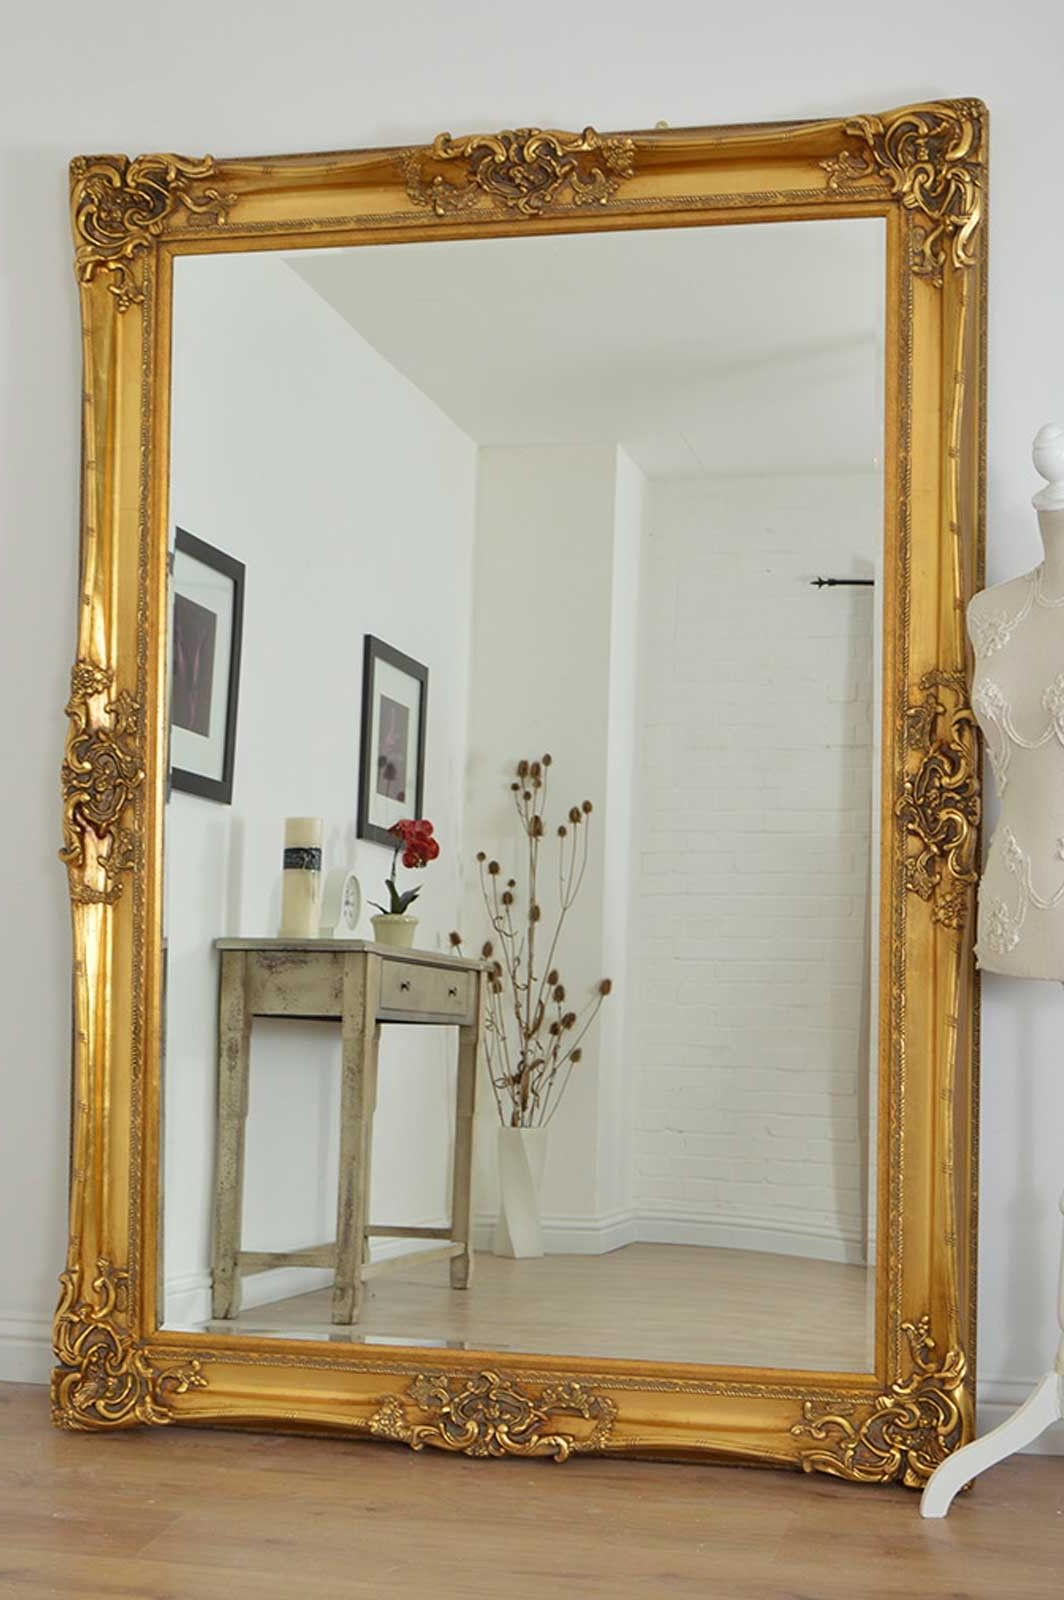 Well Liked Large Gold Very Ornate Antique Design Wall Mirror 7ft X 5ft (213cm X With Regard To Huge Wall Mirrors (View 12 of 20)